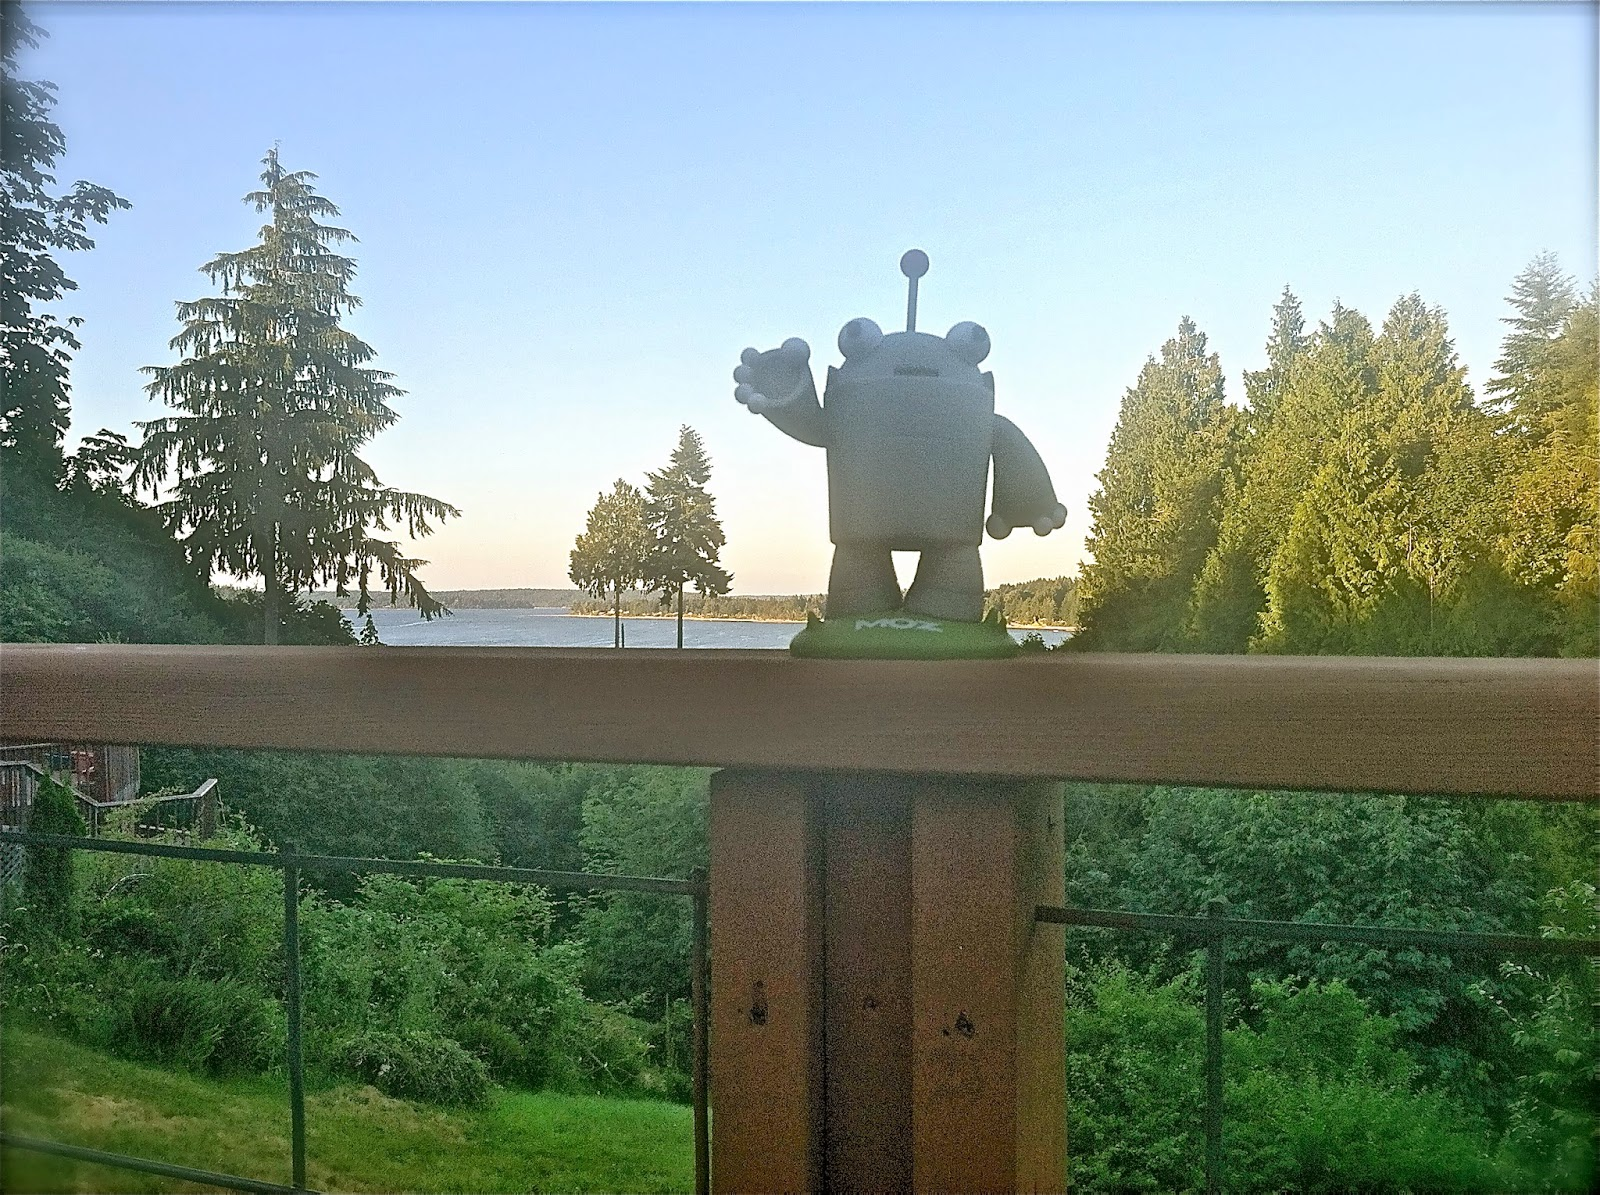 Roger MozBot waving hello from a deck on Eld Inlet, Puget Sound.